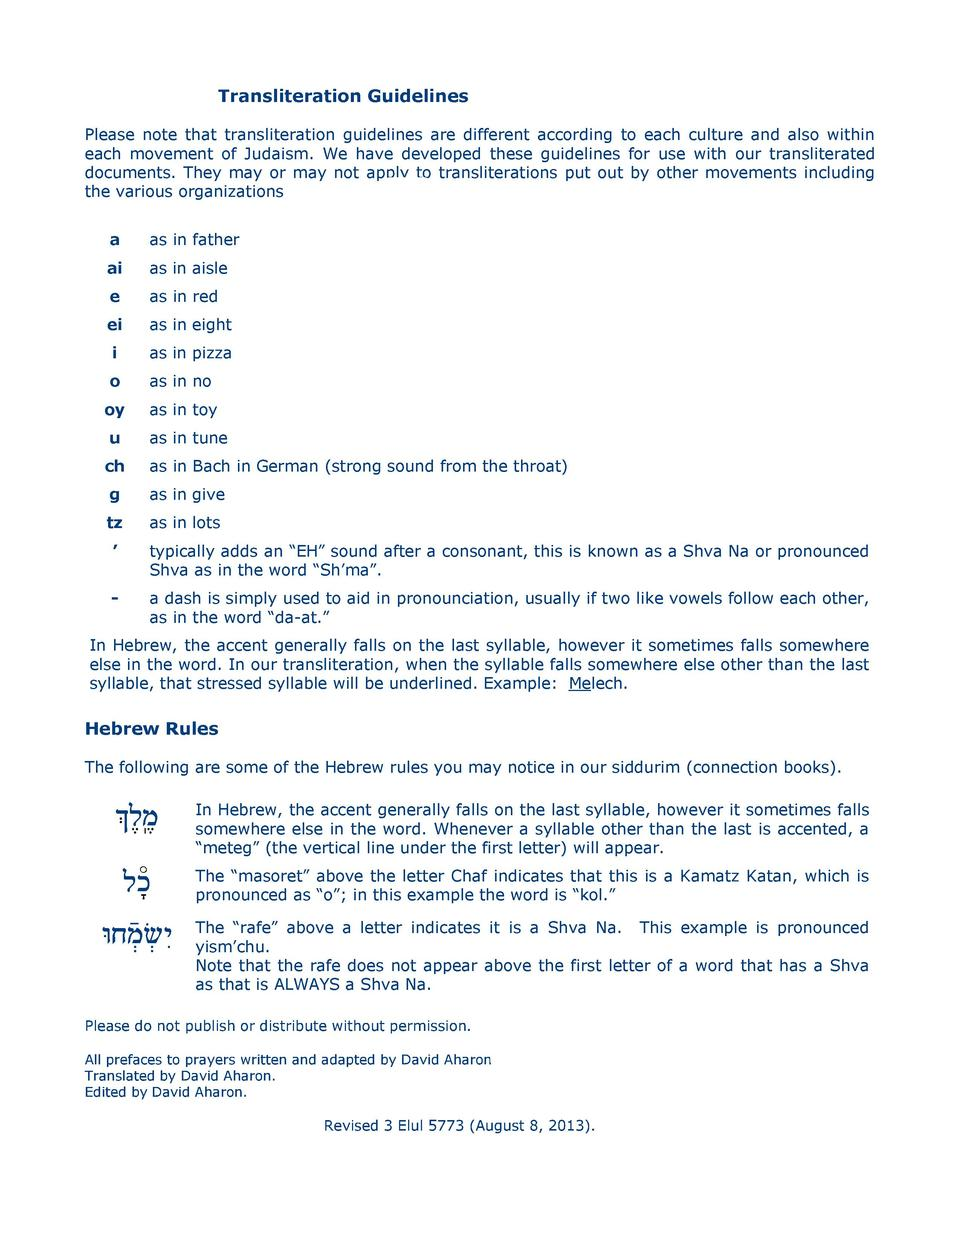 Kabbalah4All Transliteration Guidelines Please note that transliteration guidelines are different according to each cultur...